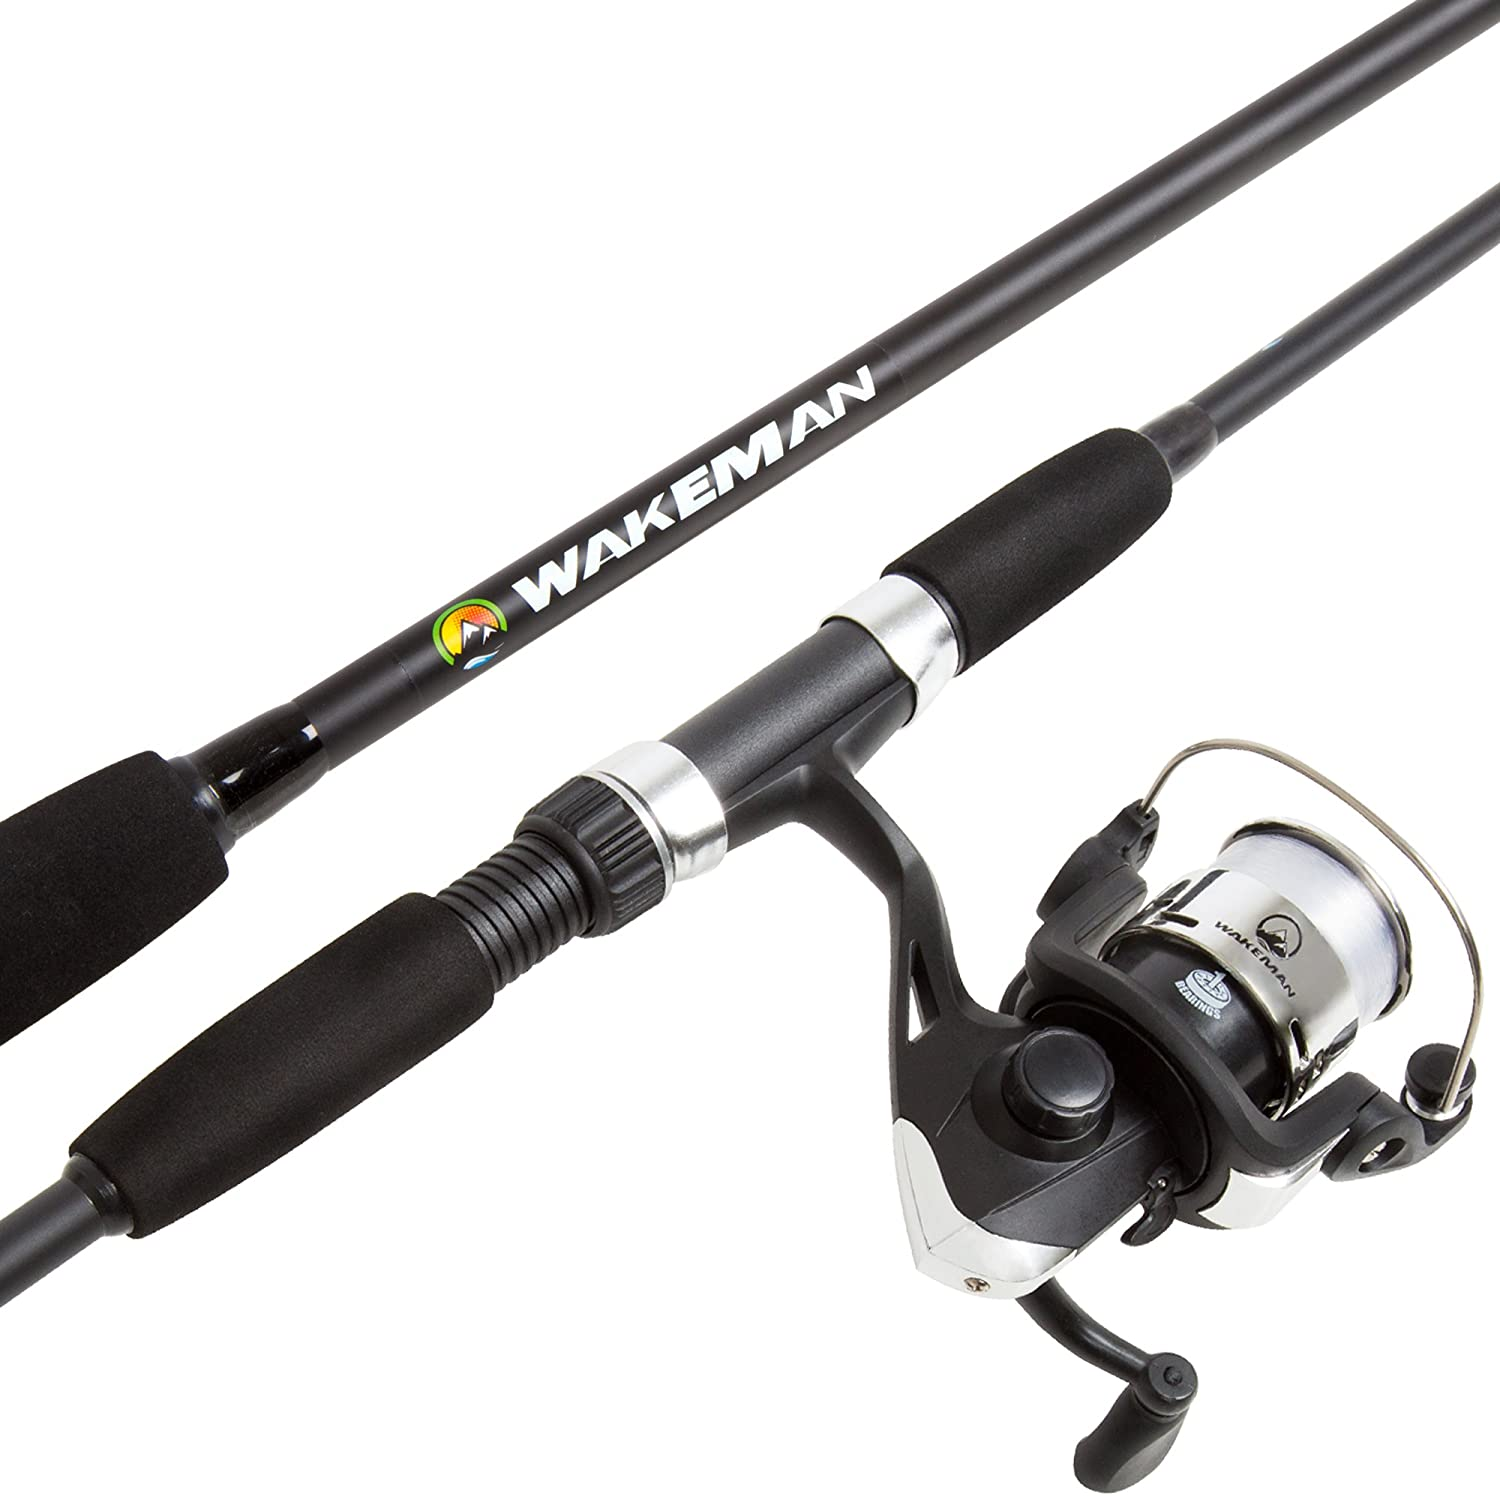 Amazon Com Wakeman Swarm Series Spinning Rod And Reel Combo Blackout Clothing